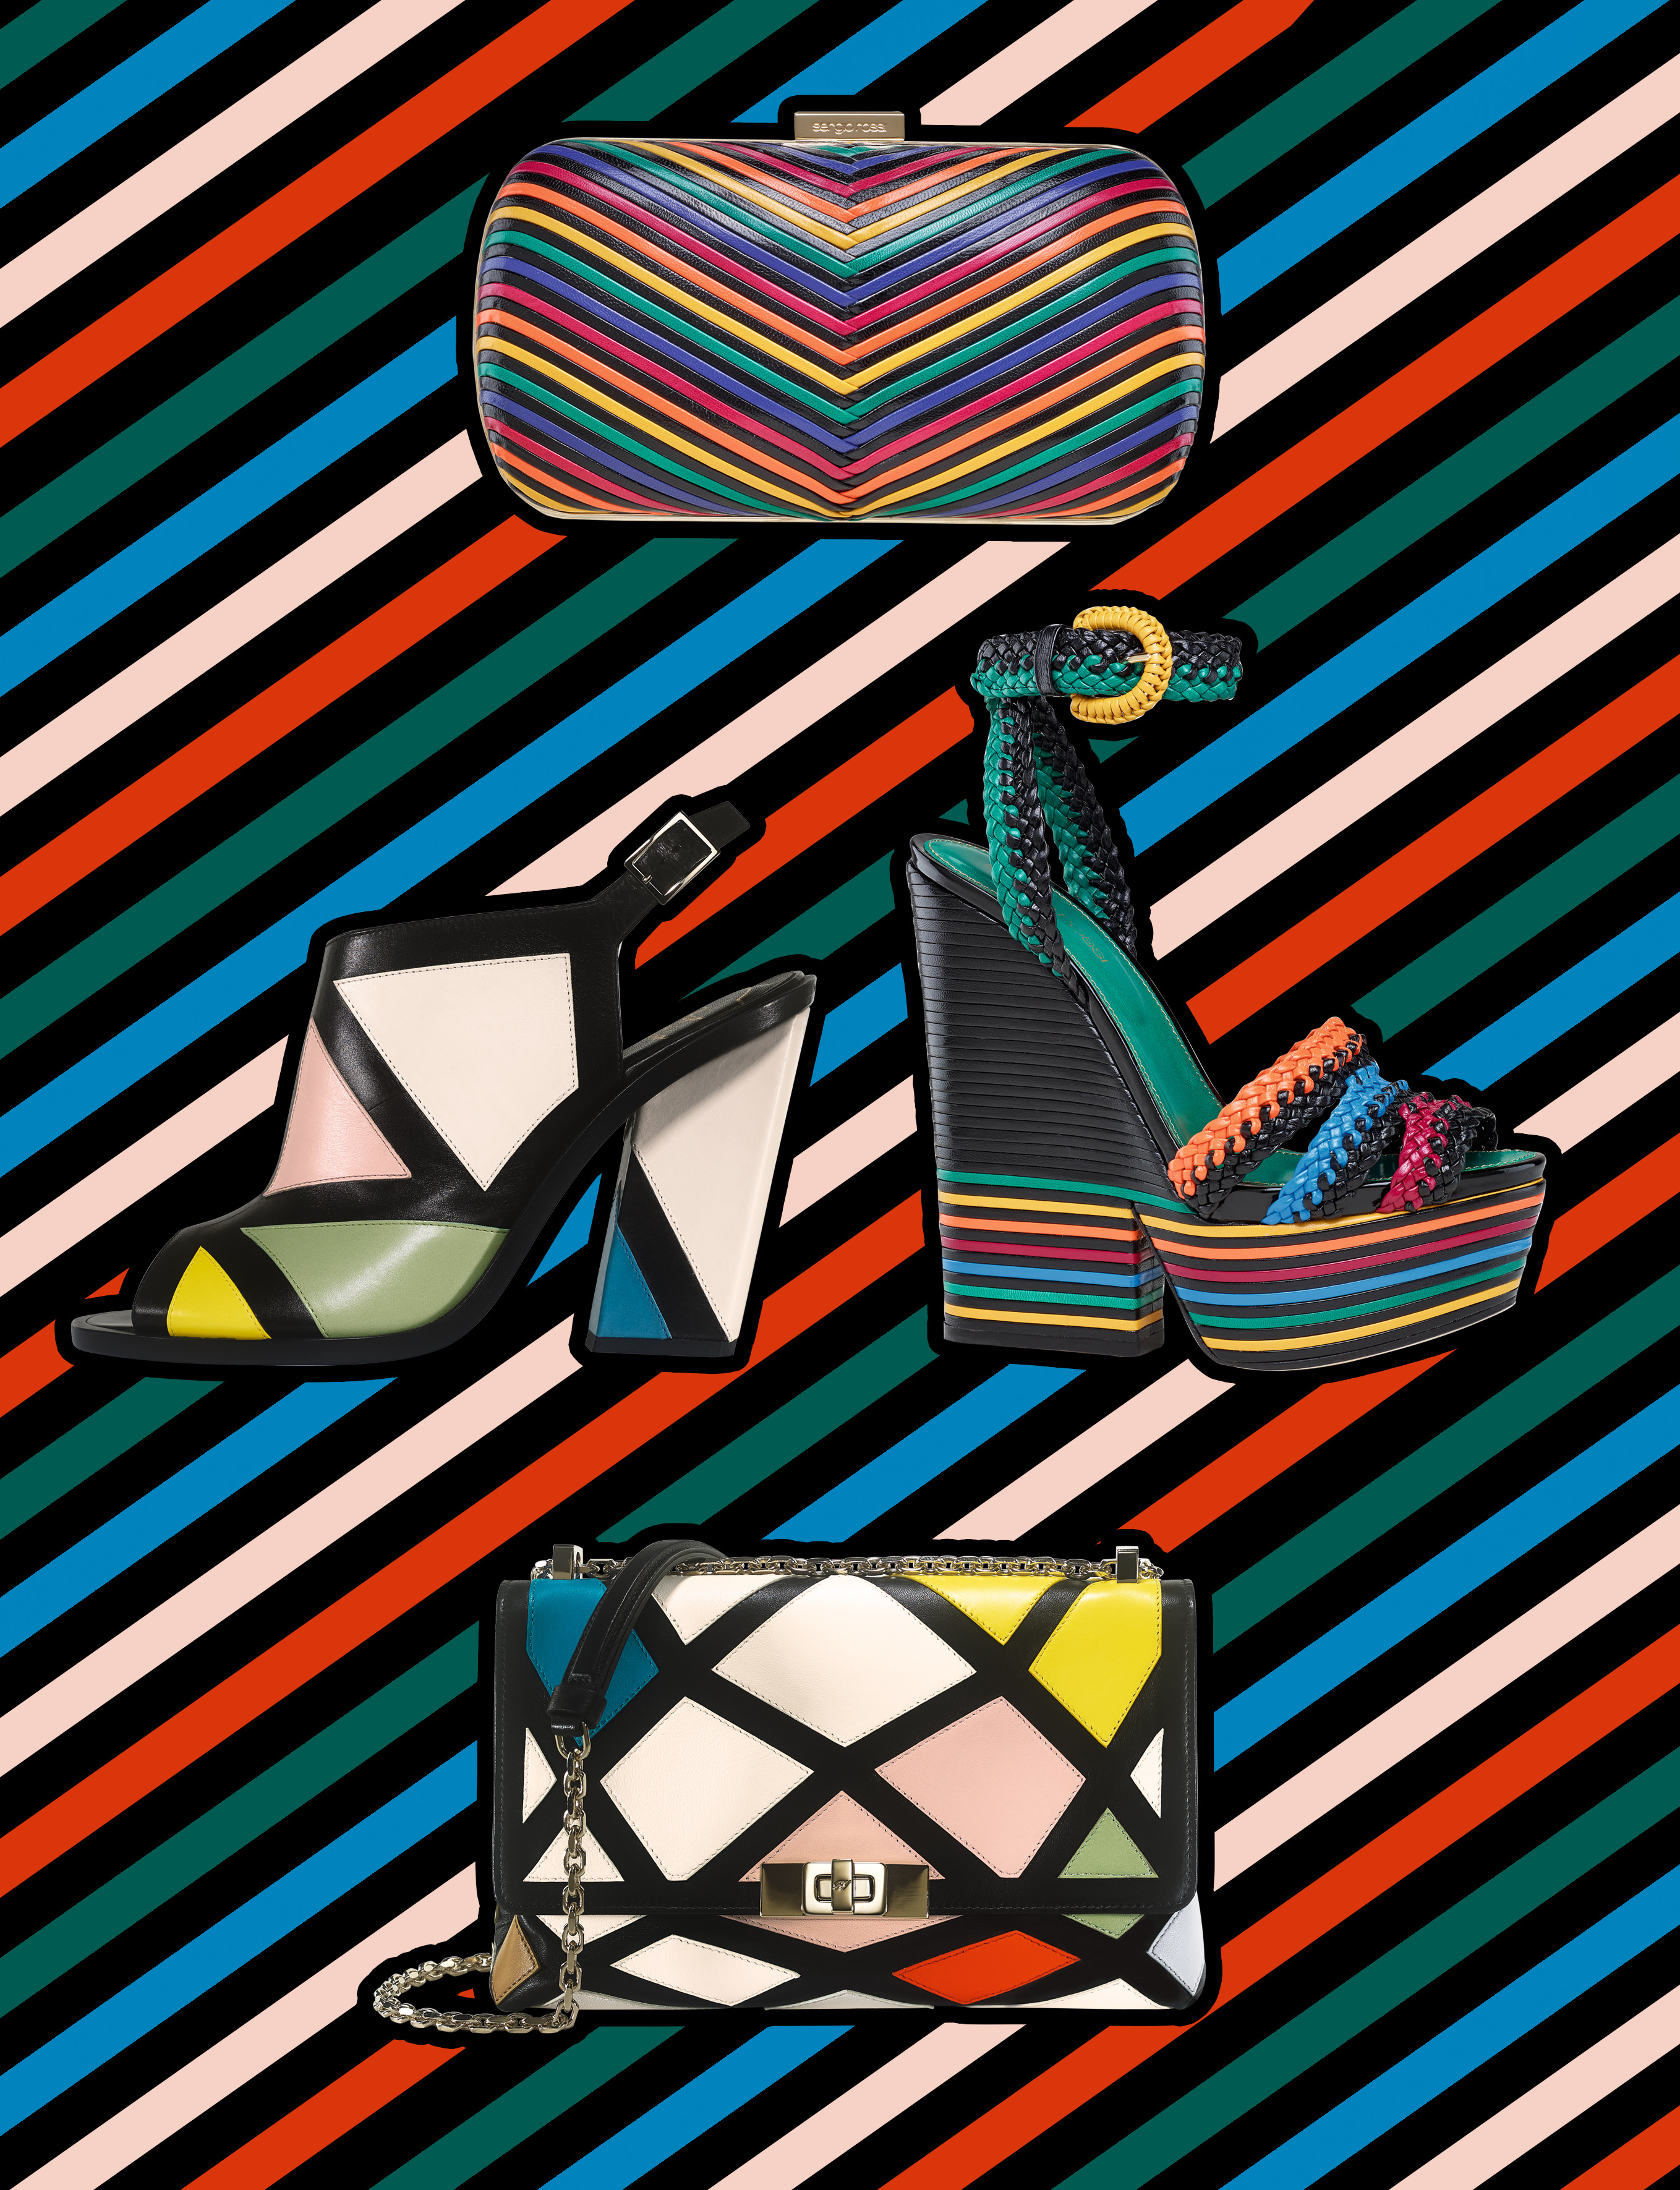 Our selection of graphical and colorful accessories